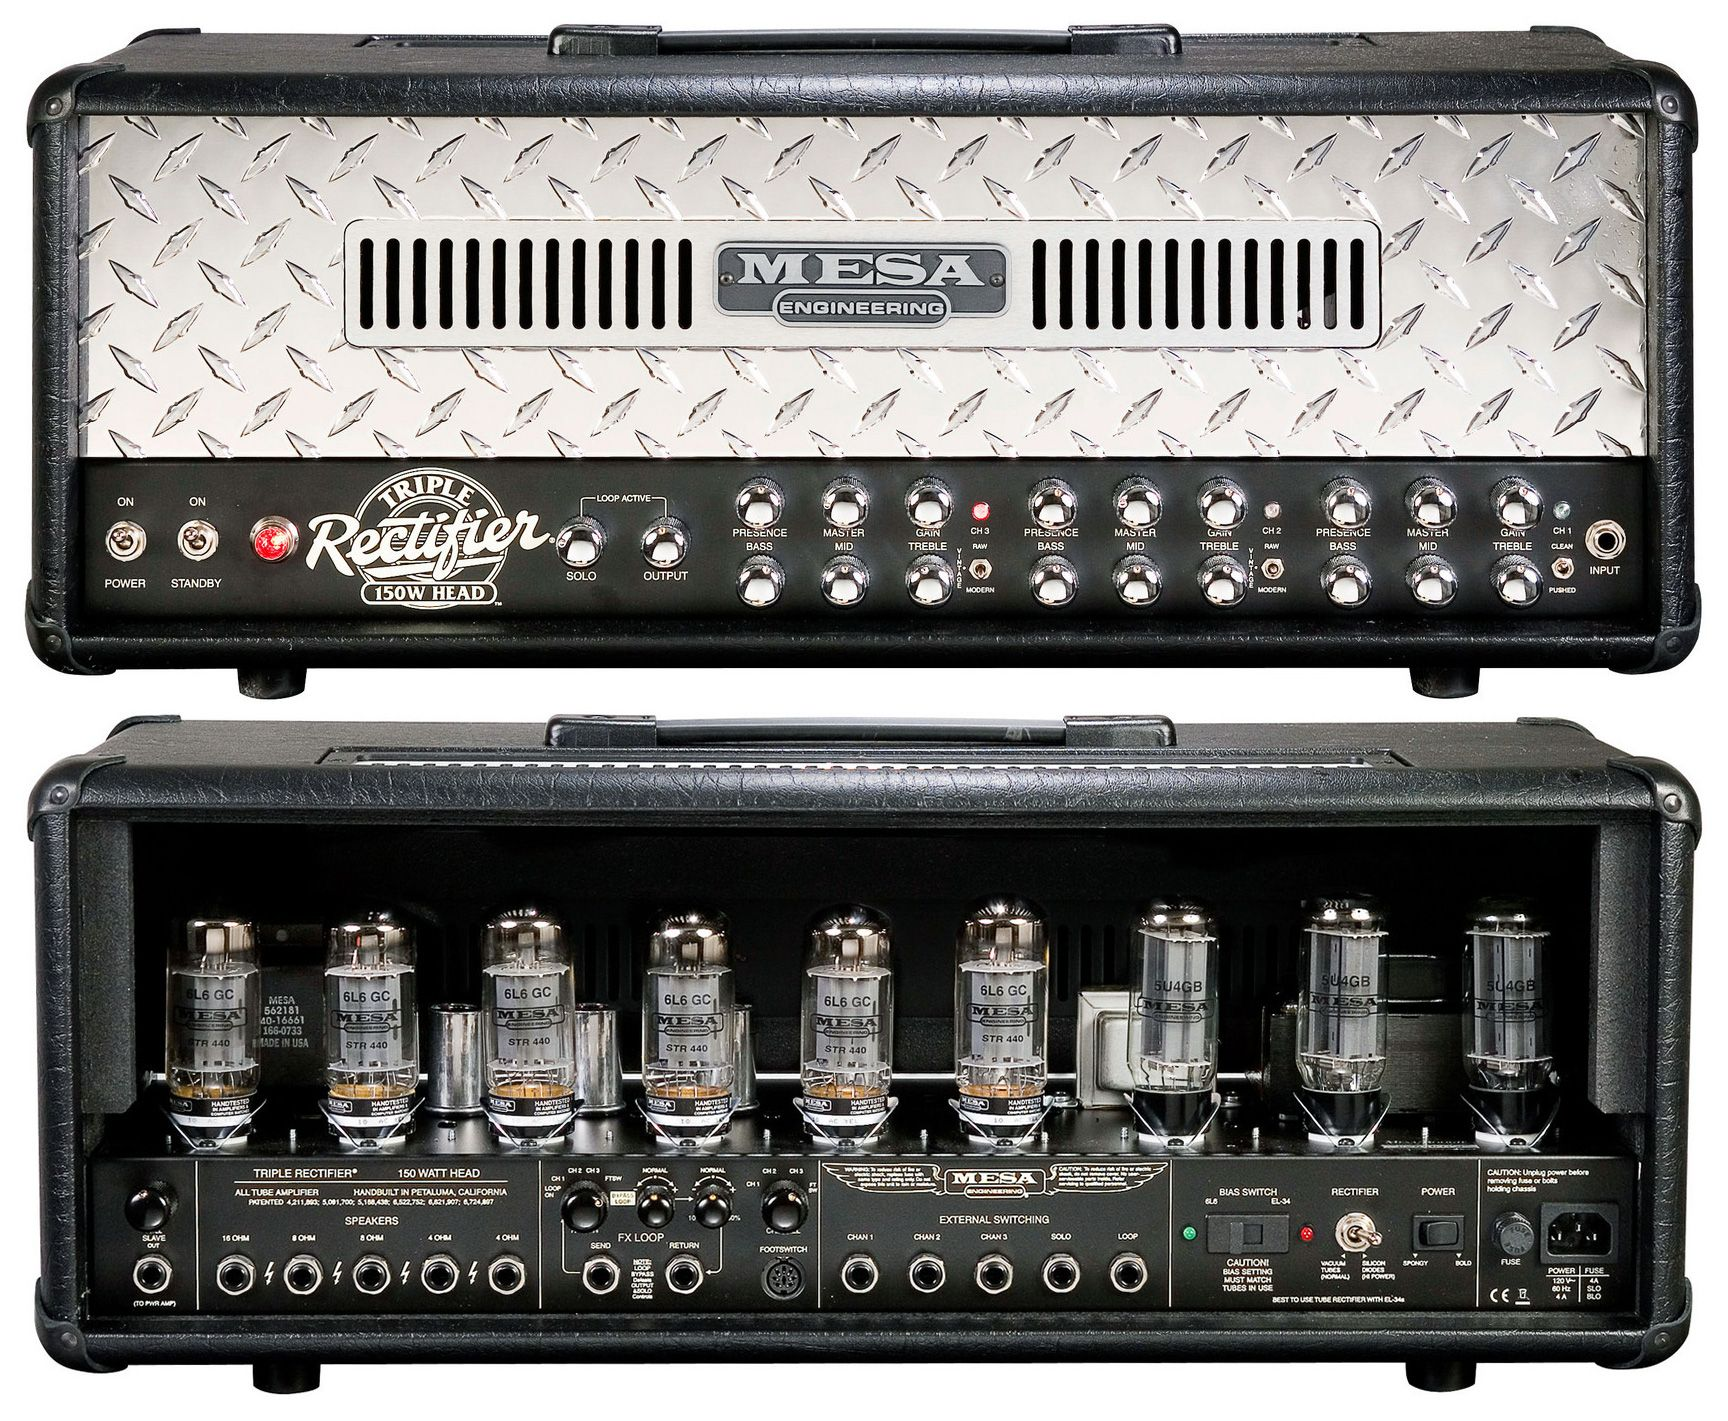 Mesa boogie triple rectifier  That's a lot of tubes  Reminds